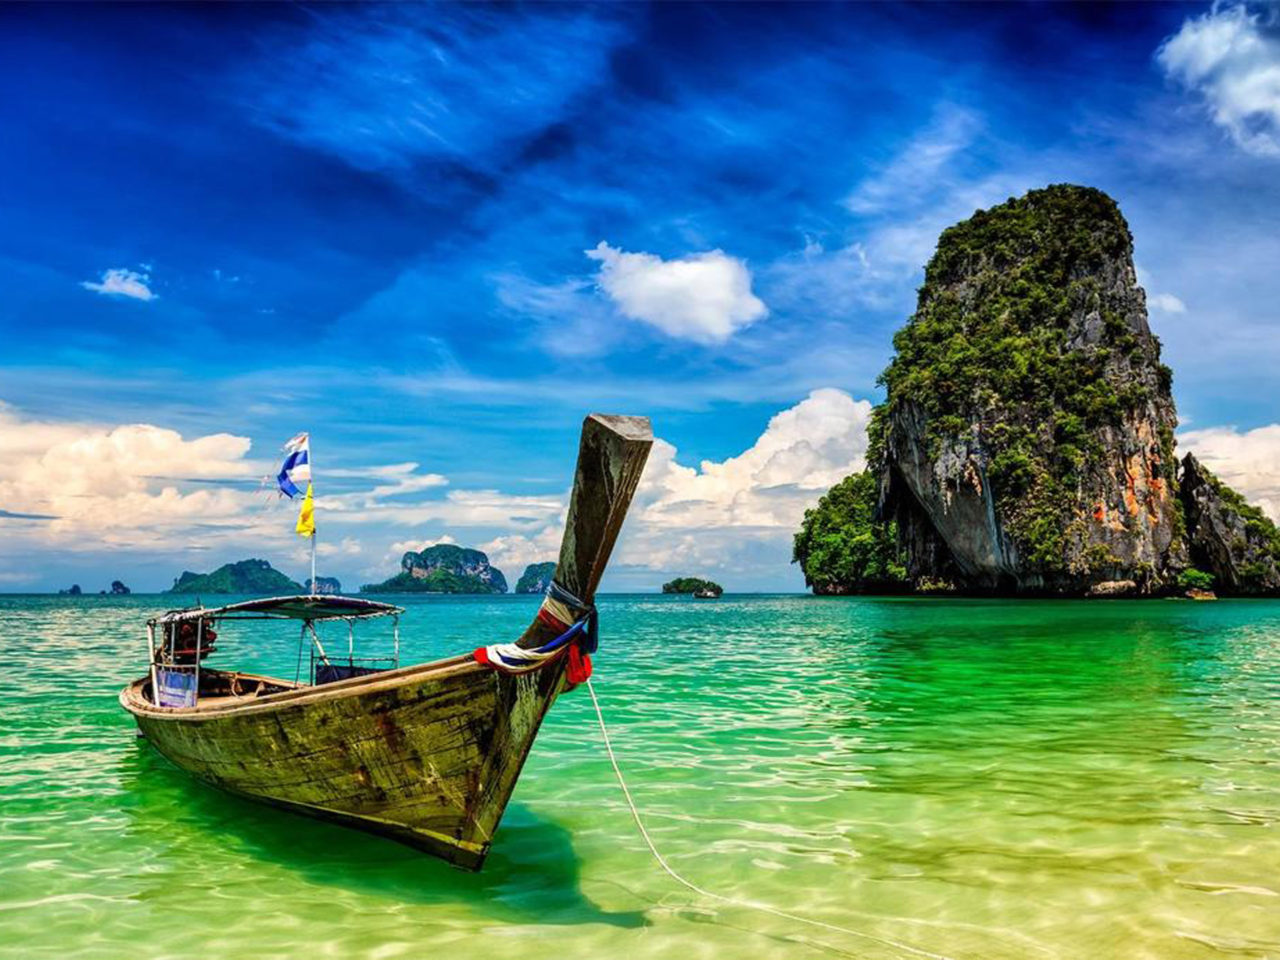 Florida State Iphone X Wallpaper Pranang Beach And Rock Krabi Thailand Long Tail Boat On A